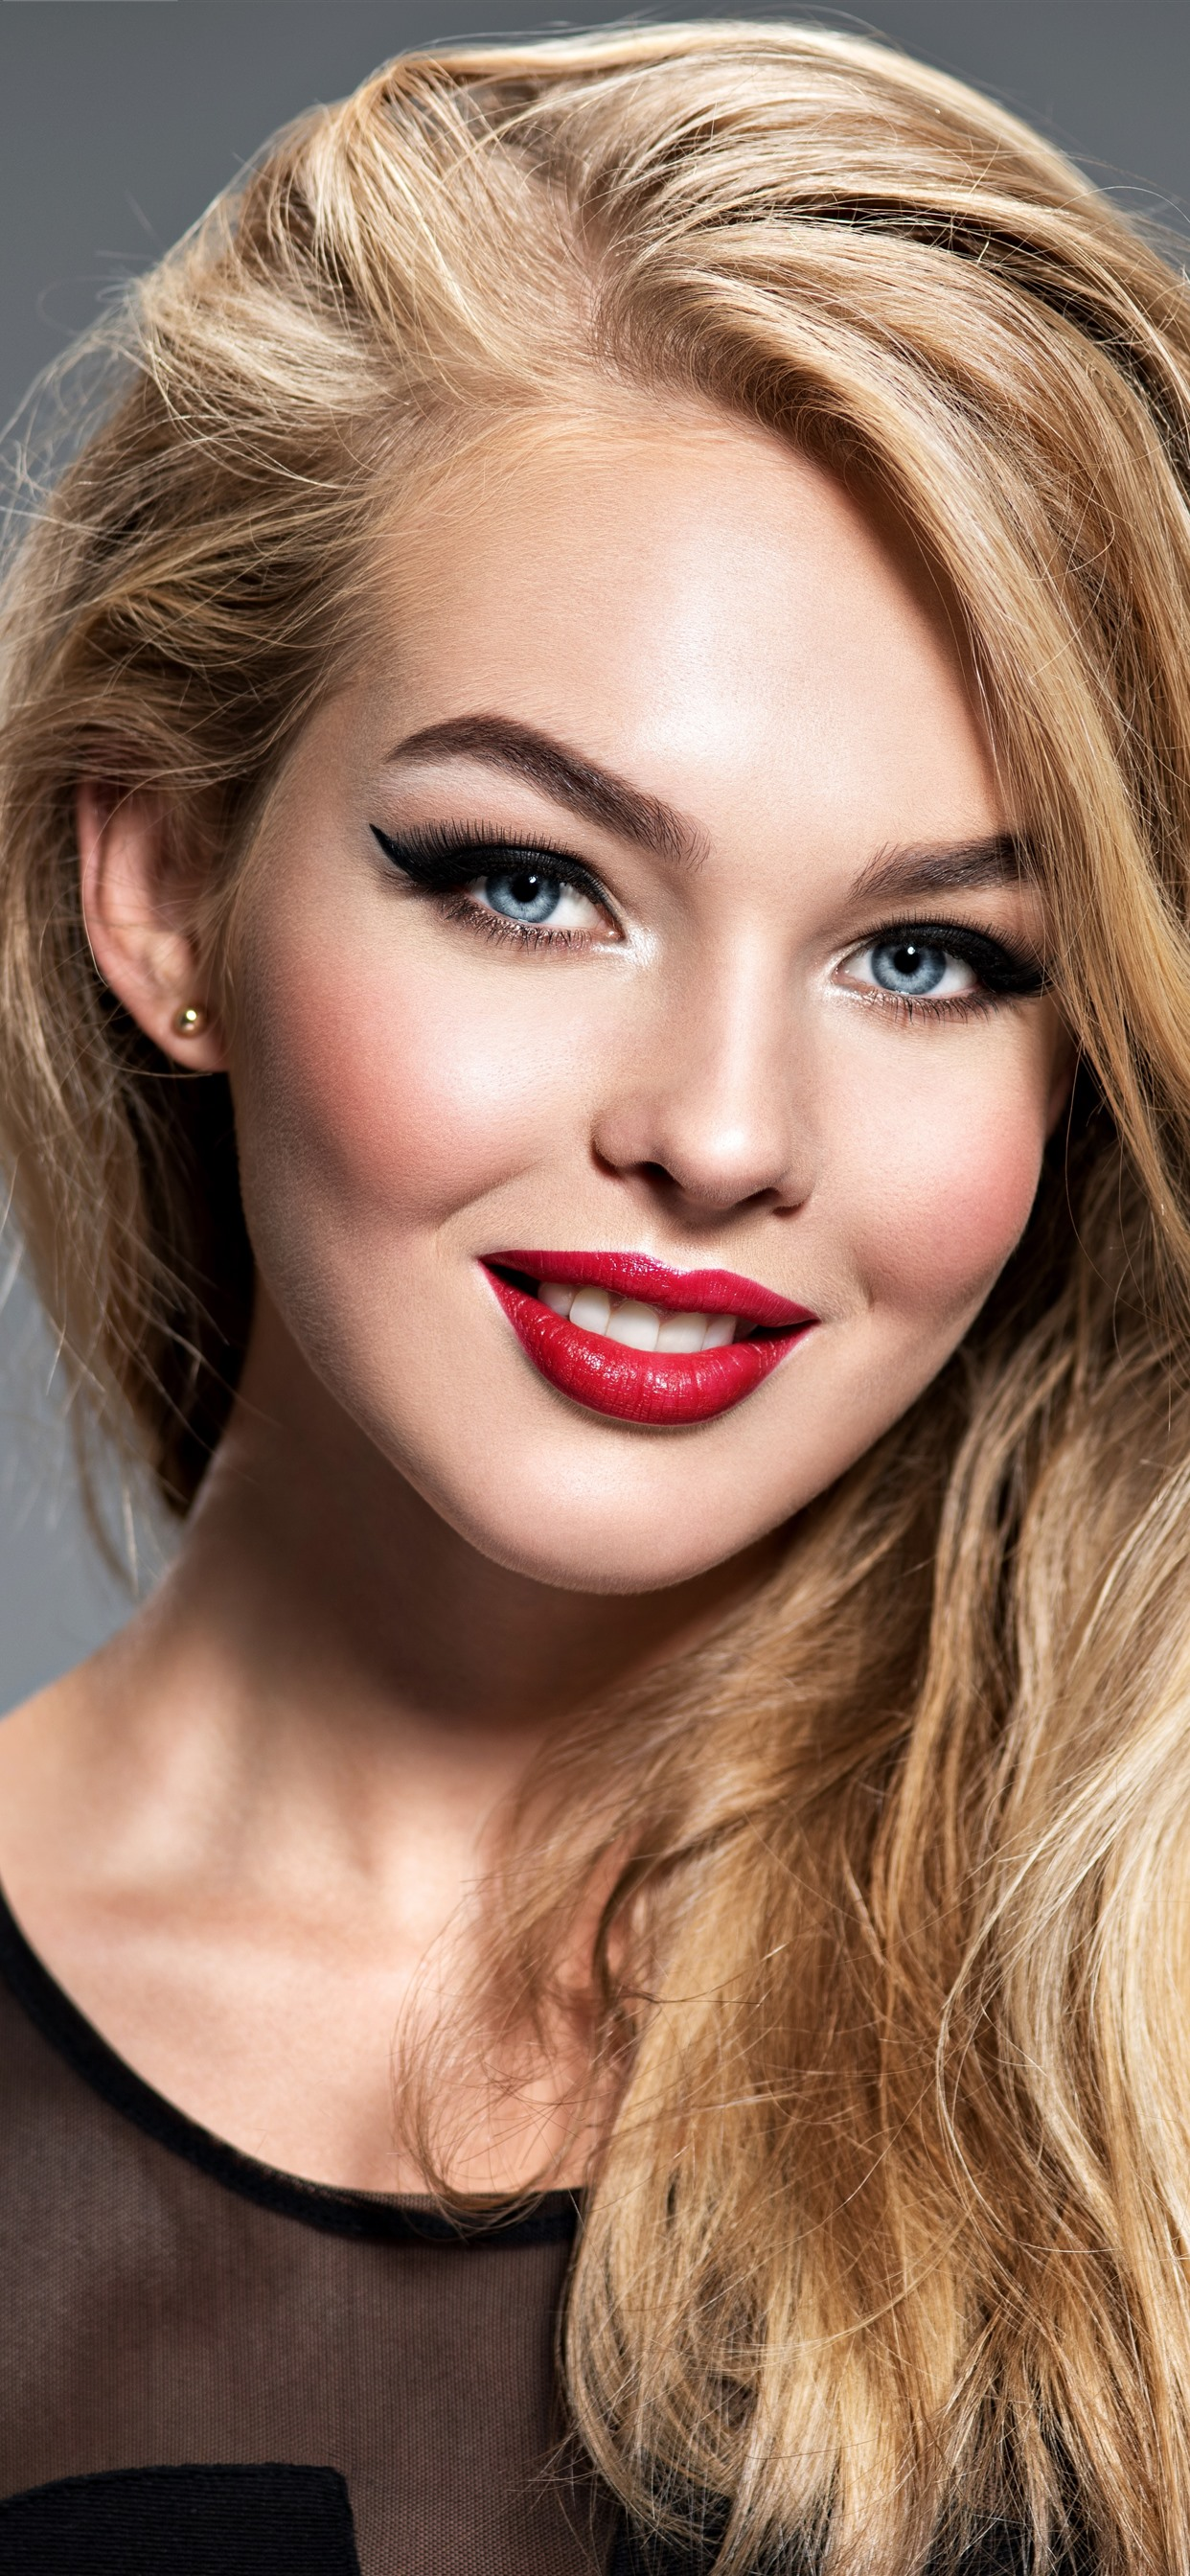 Smile Blonde Girl Blue Eyes Red Lip Makeup 1242x2688